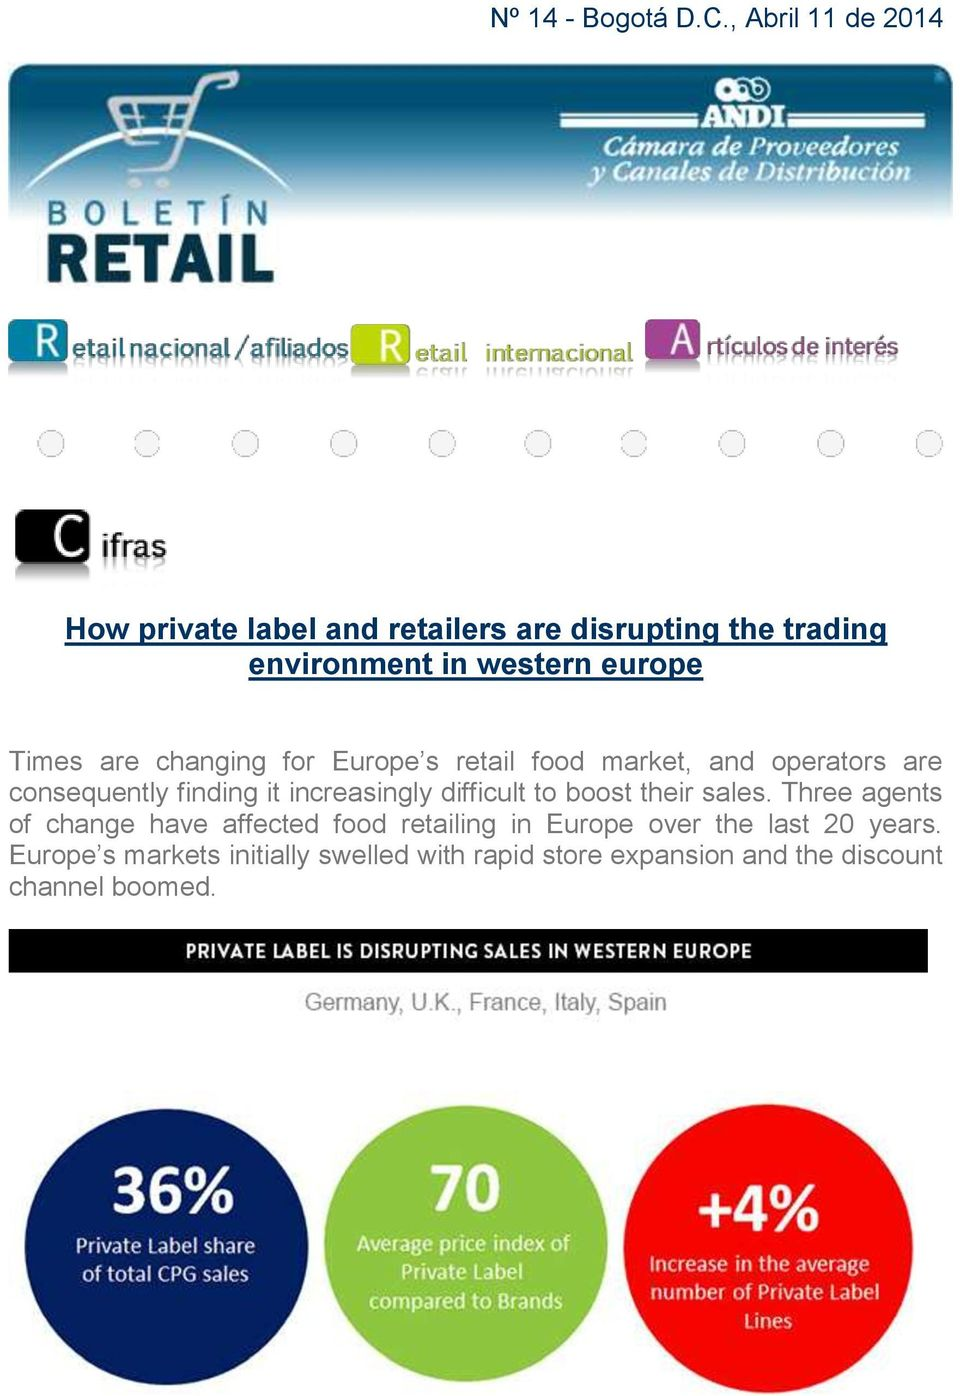 Times are changing for Europe s retail food market, and operators are consequently finding it increasingly